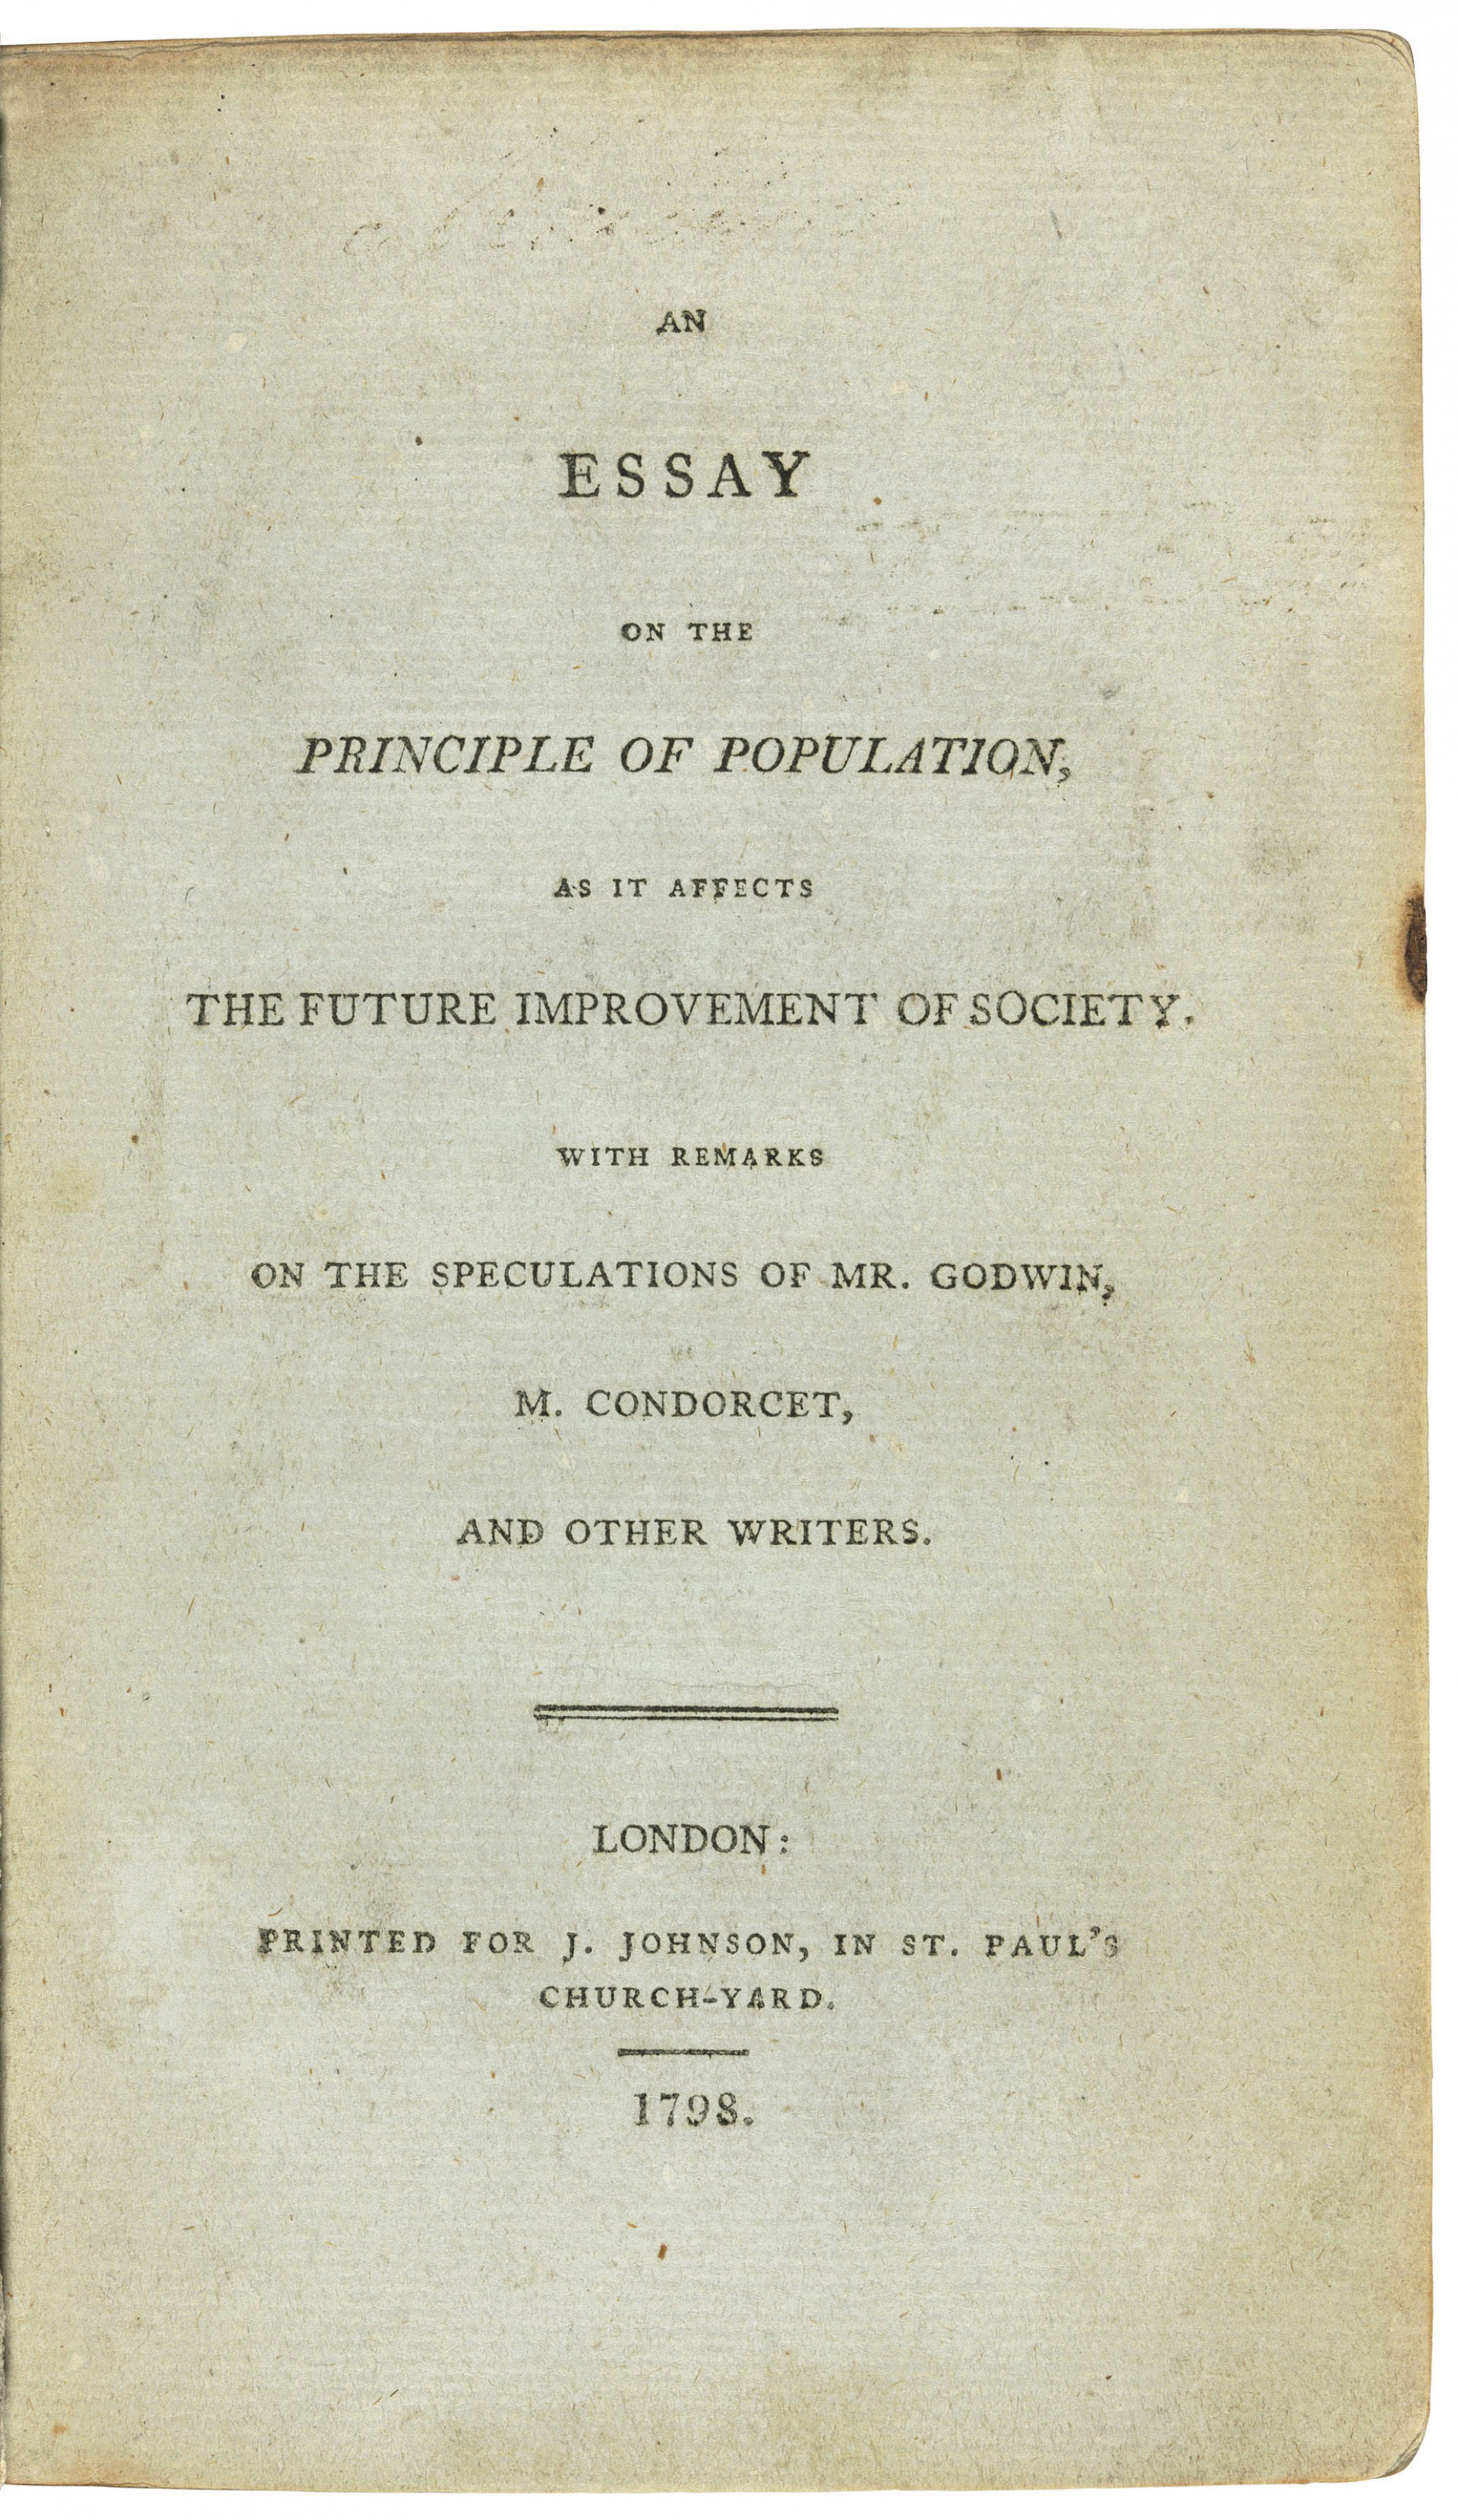 018 2018 Cks 16018 0261 000malthus Thomas Robert An Essay On The Principle Of As It Af Example Fascinating Population By Malthus Pdf In Concluded Which Following 1920